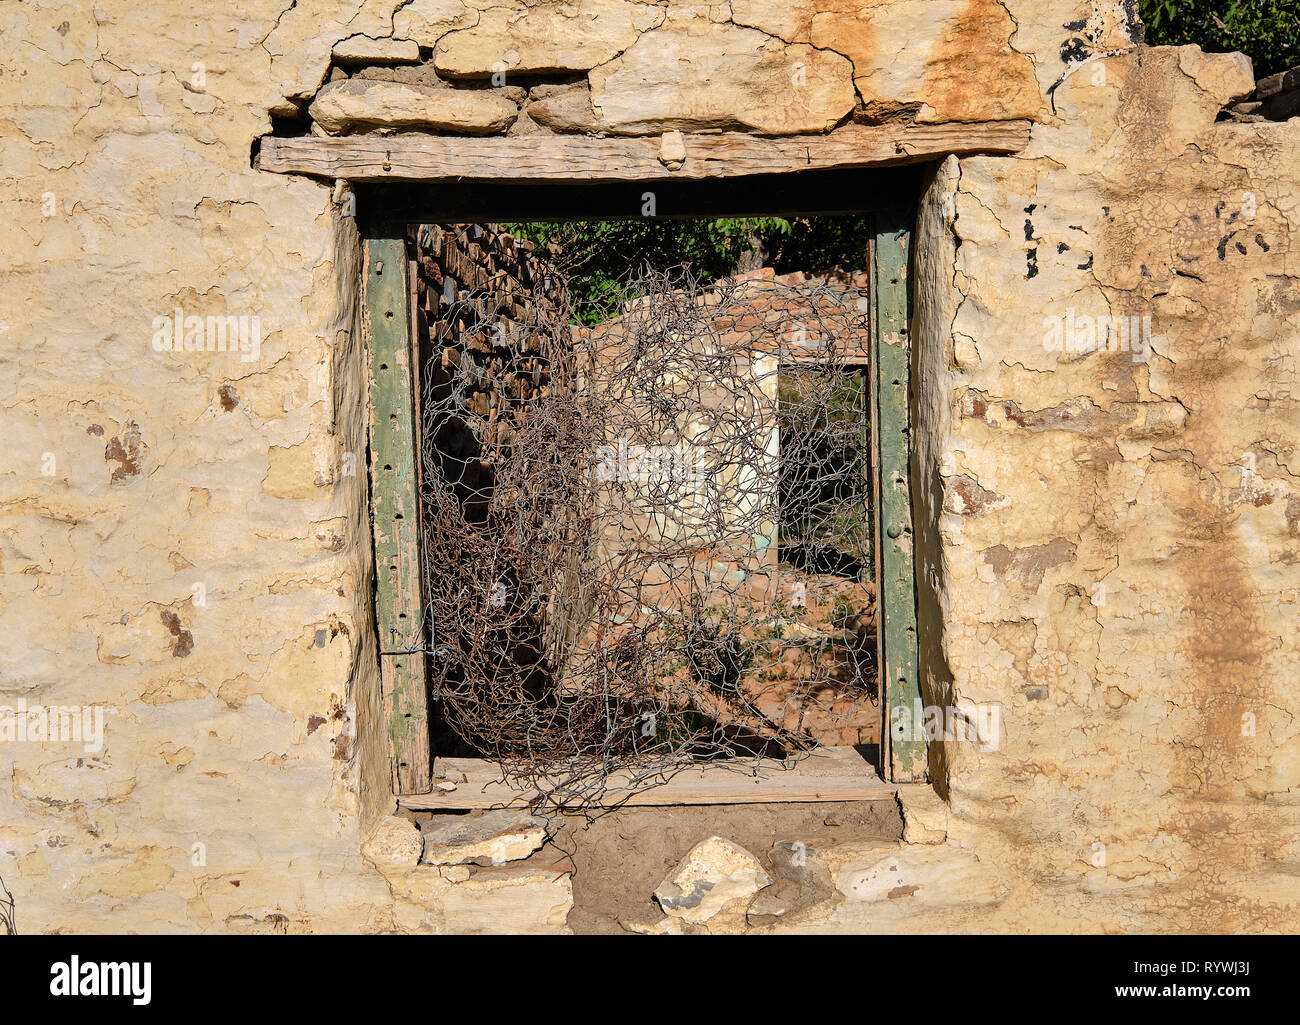 Central empty green window frame on rocky wall of abandoned house.  Through frame see barbed wires and rest of structure in ruin Stock Photo